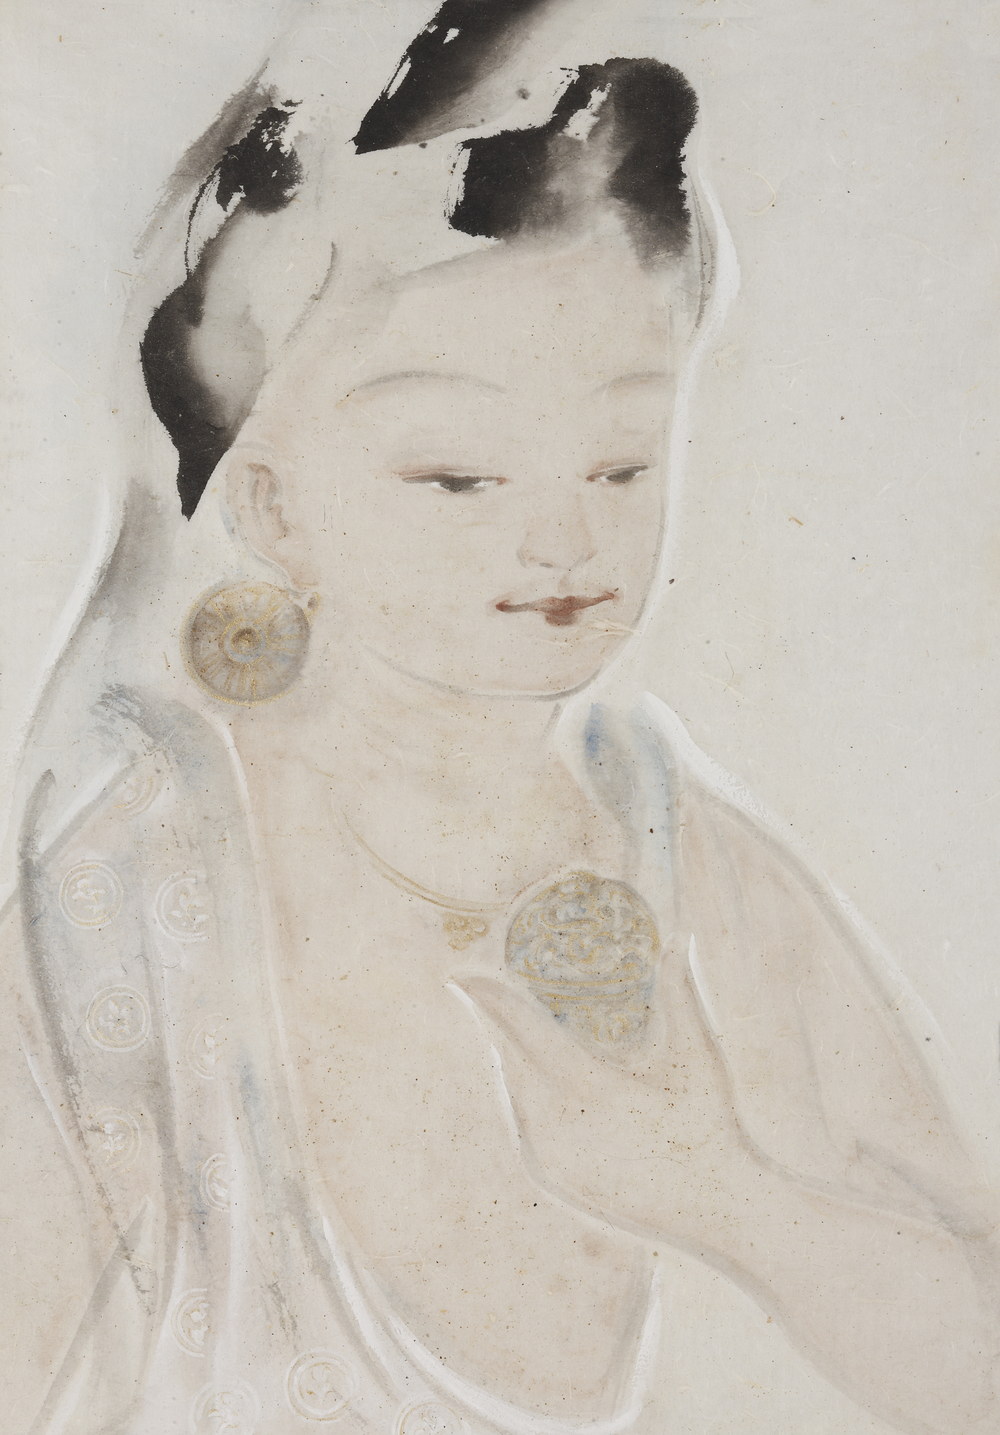 Pan Wenxun 潘汶汛, Duxin 渡心, 2012, Chinese ink and mineral color on rice paper 纸本水墨设色, 46.5 x 33.5 cm